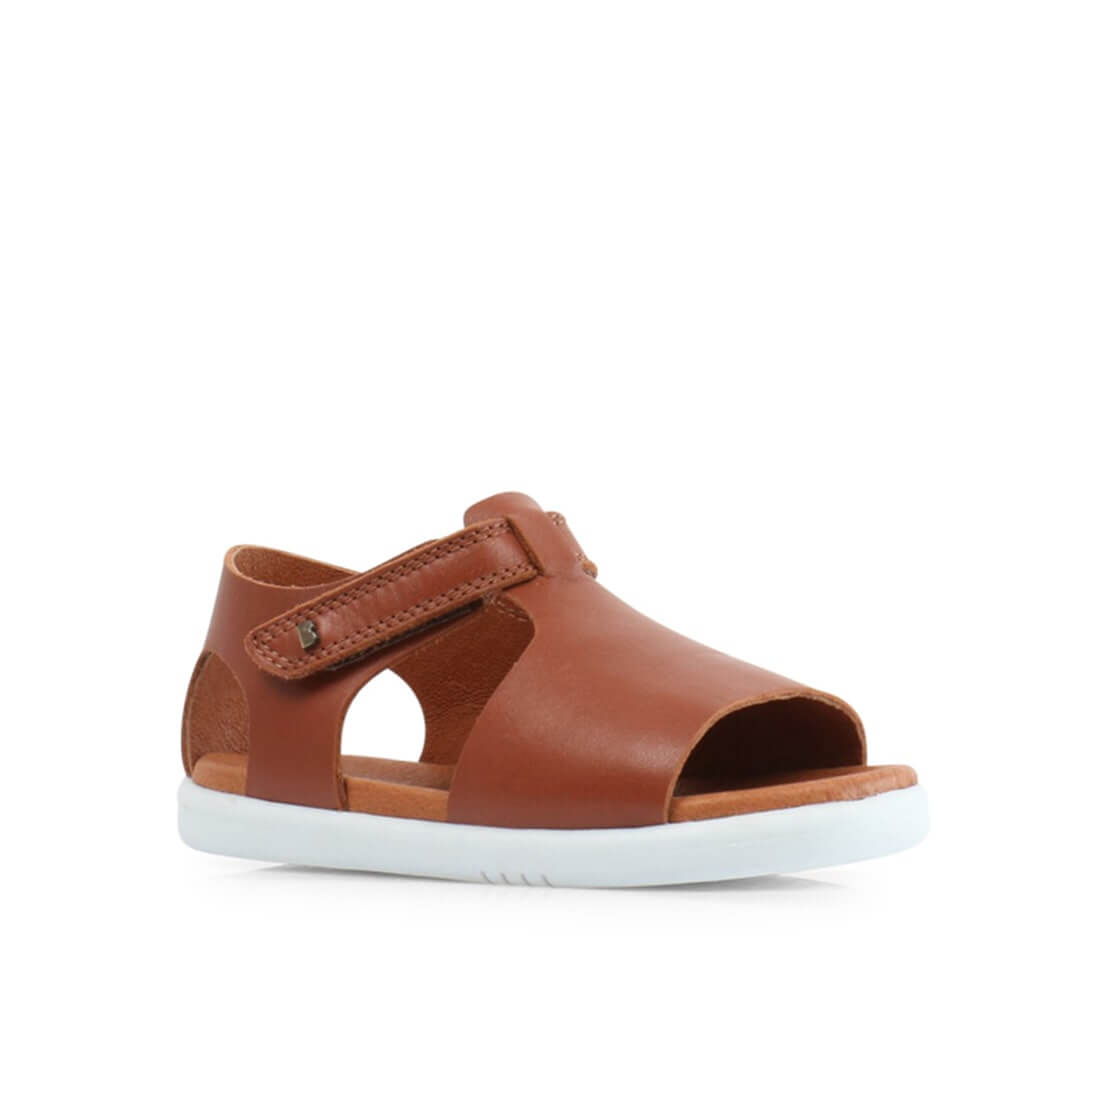 Bobux I-Walk Sandal Mirror - Chestnut (Tan)